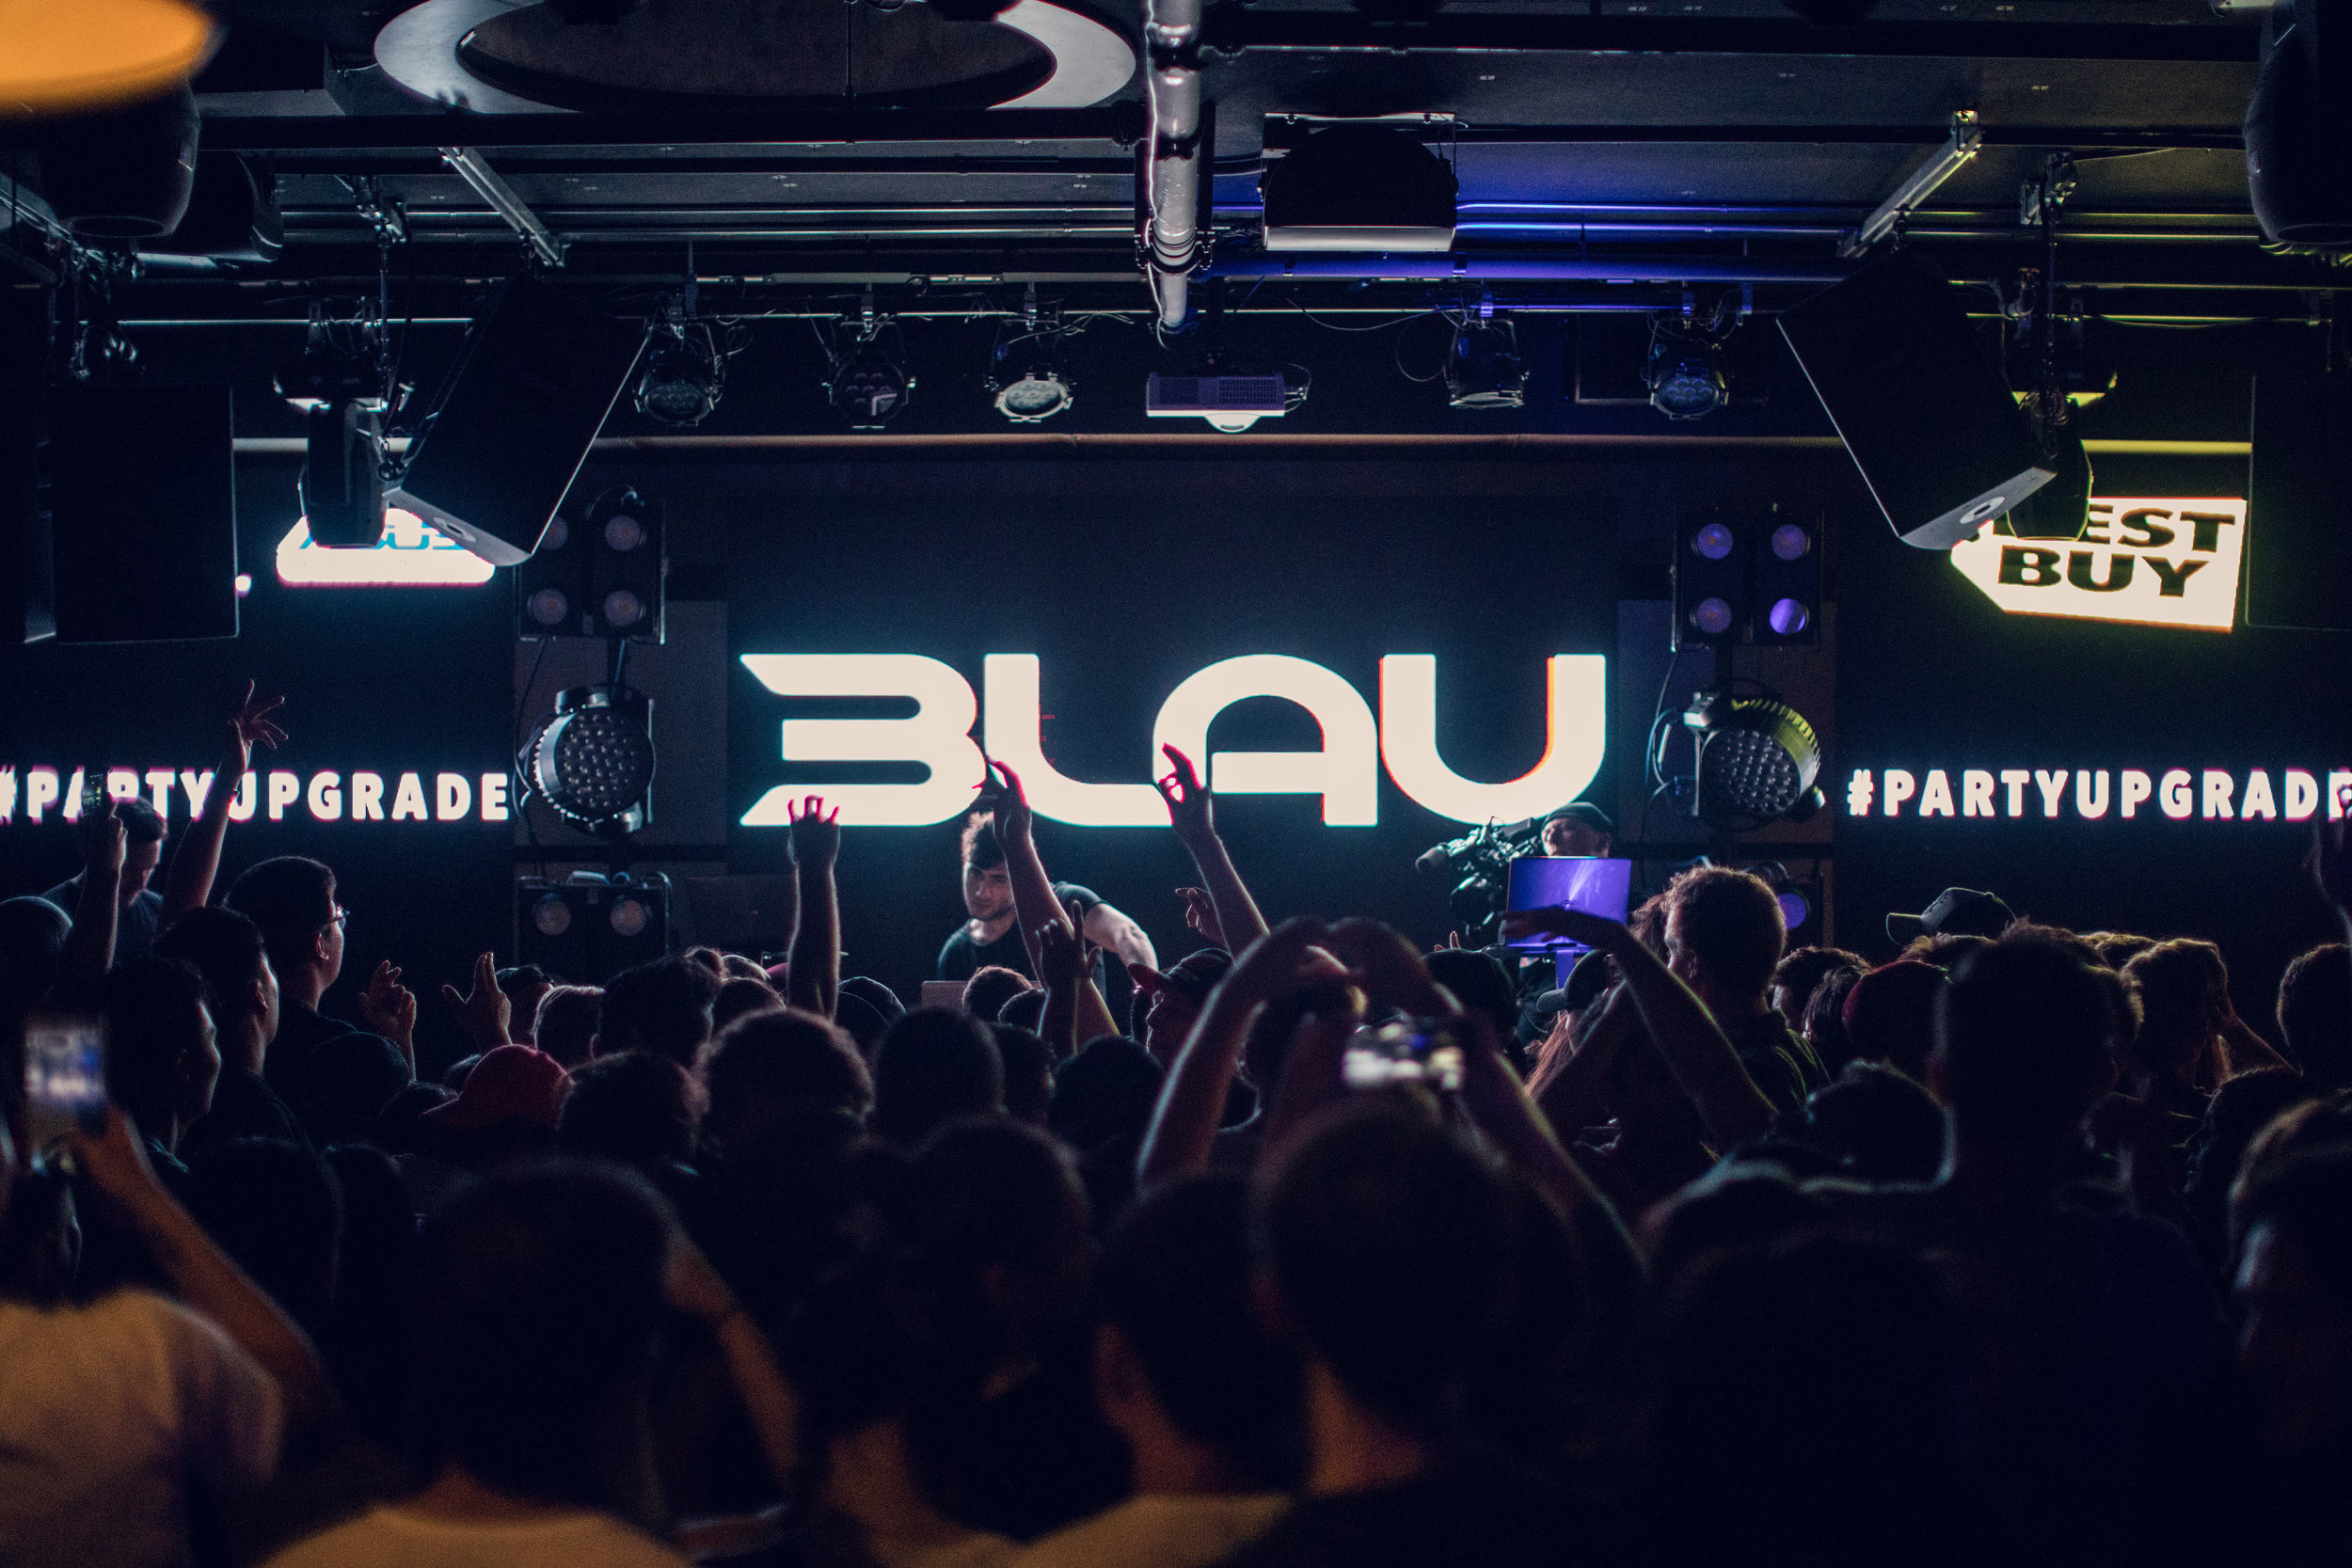 7.26.2017 - Grayson Repp 3LAU @ UBC PIT - Edited 3lau Set (36 of 37)s.jpg